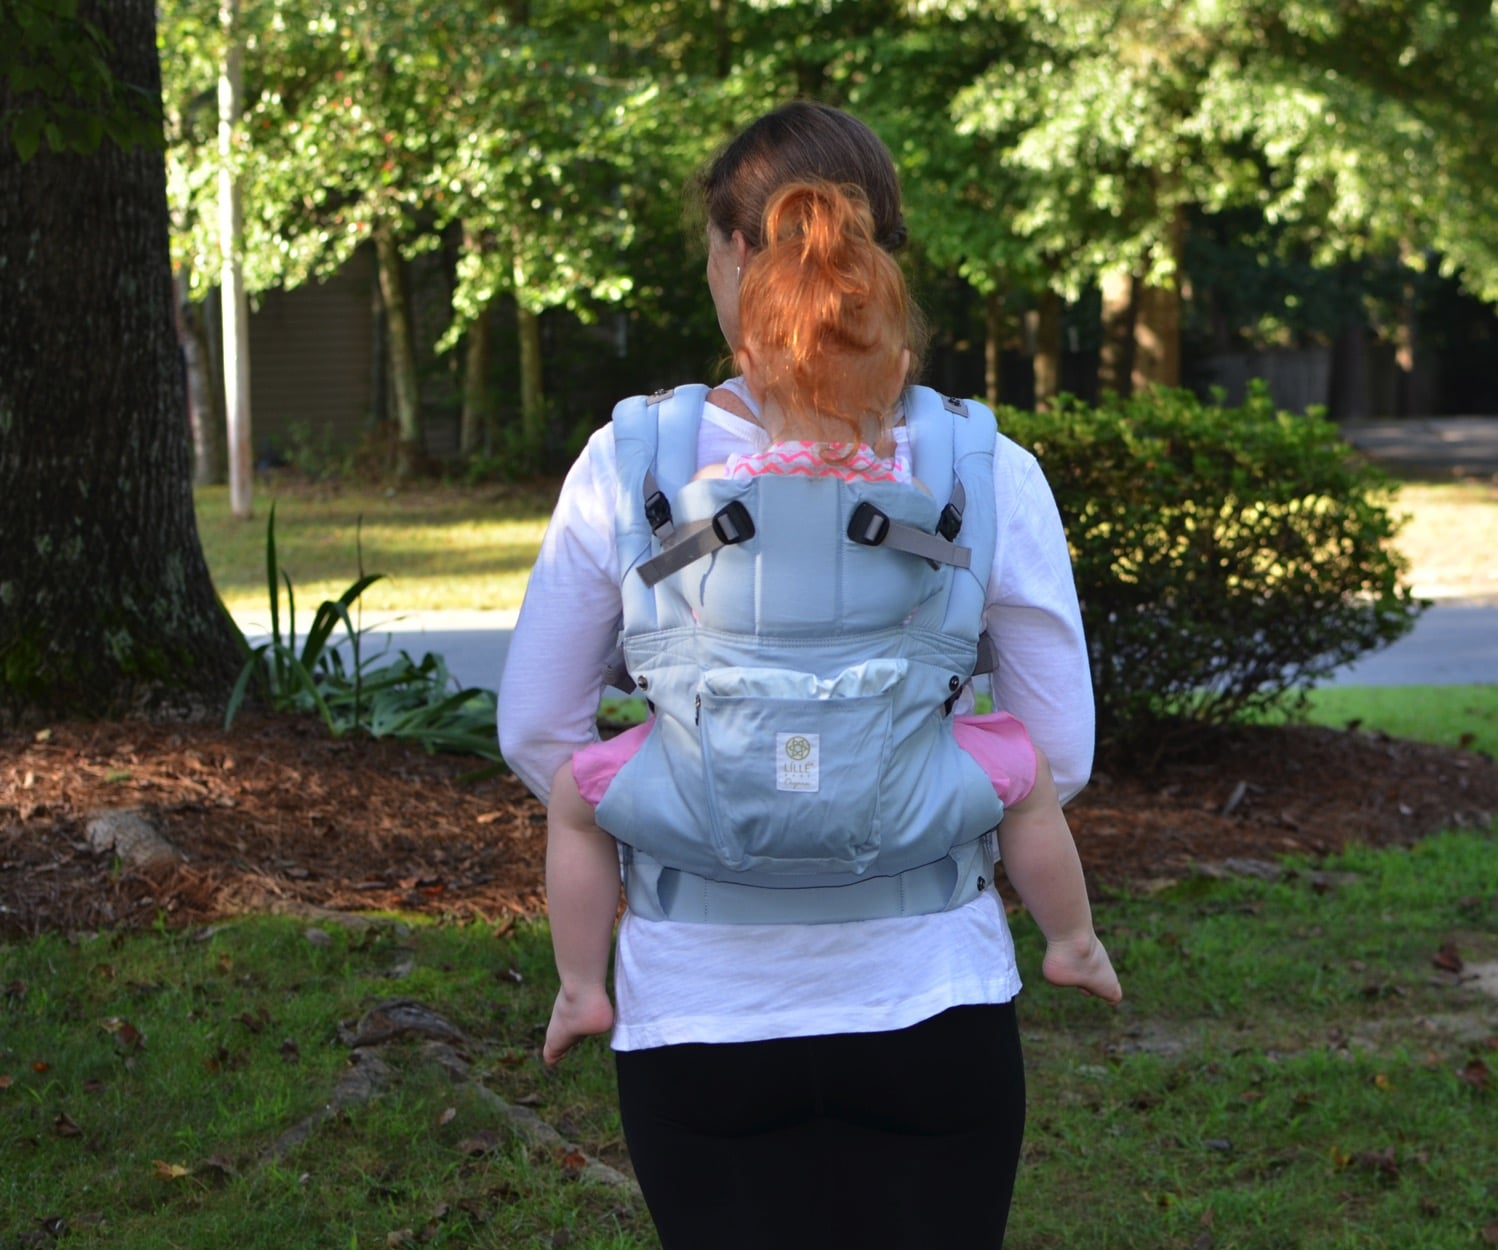 lillebaby complete organic Back carry back view